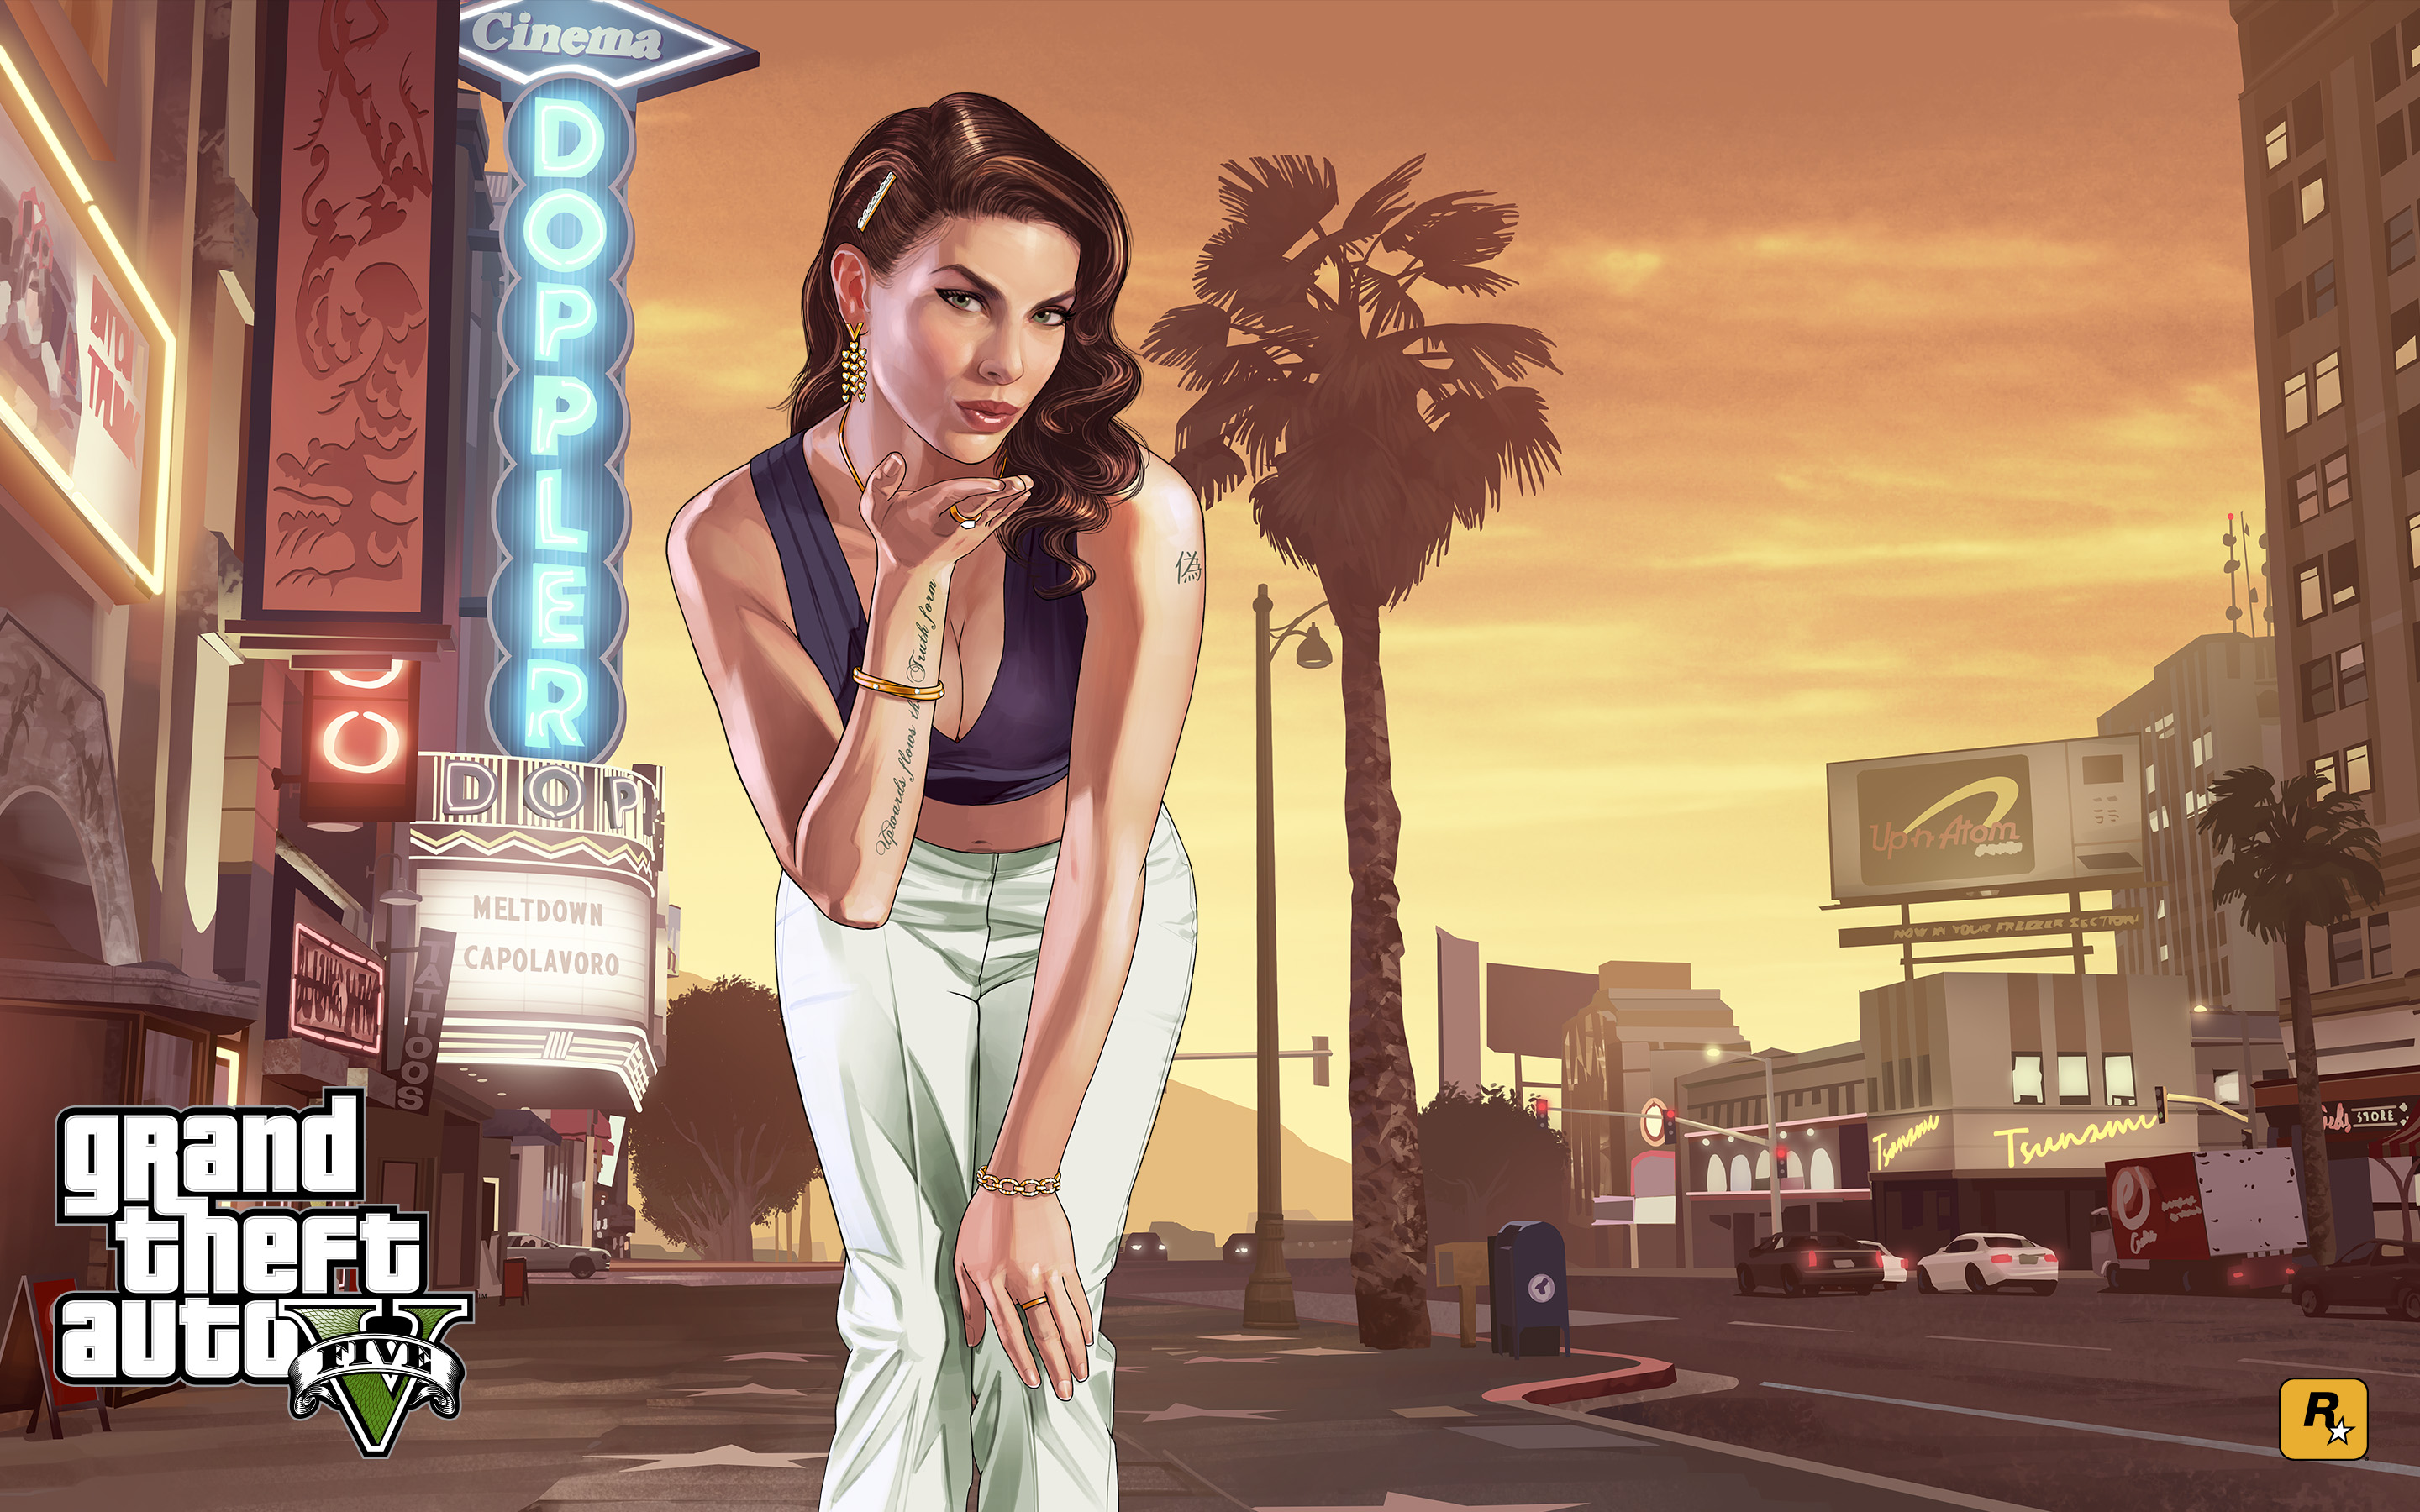 gta 5 loading girl, hd games, 4k wallpapers, images, backgrounds